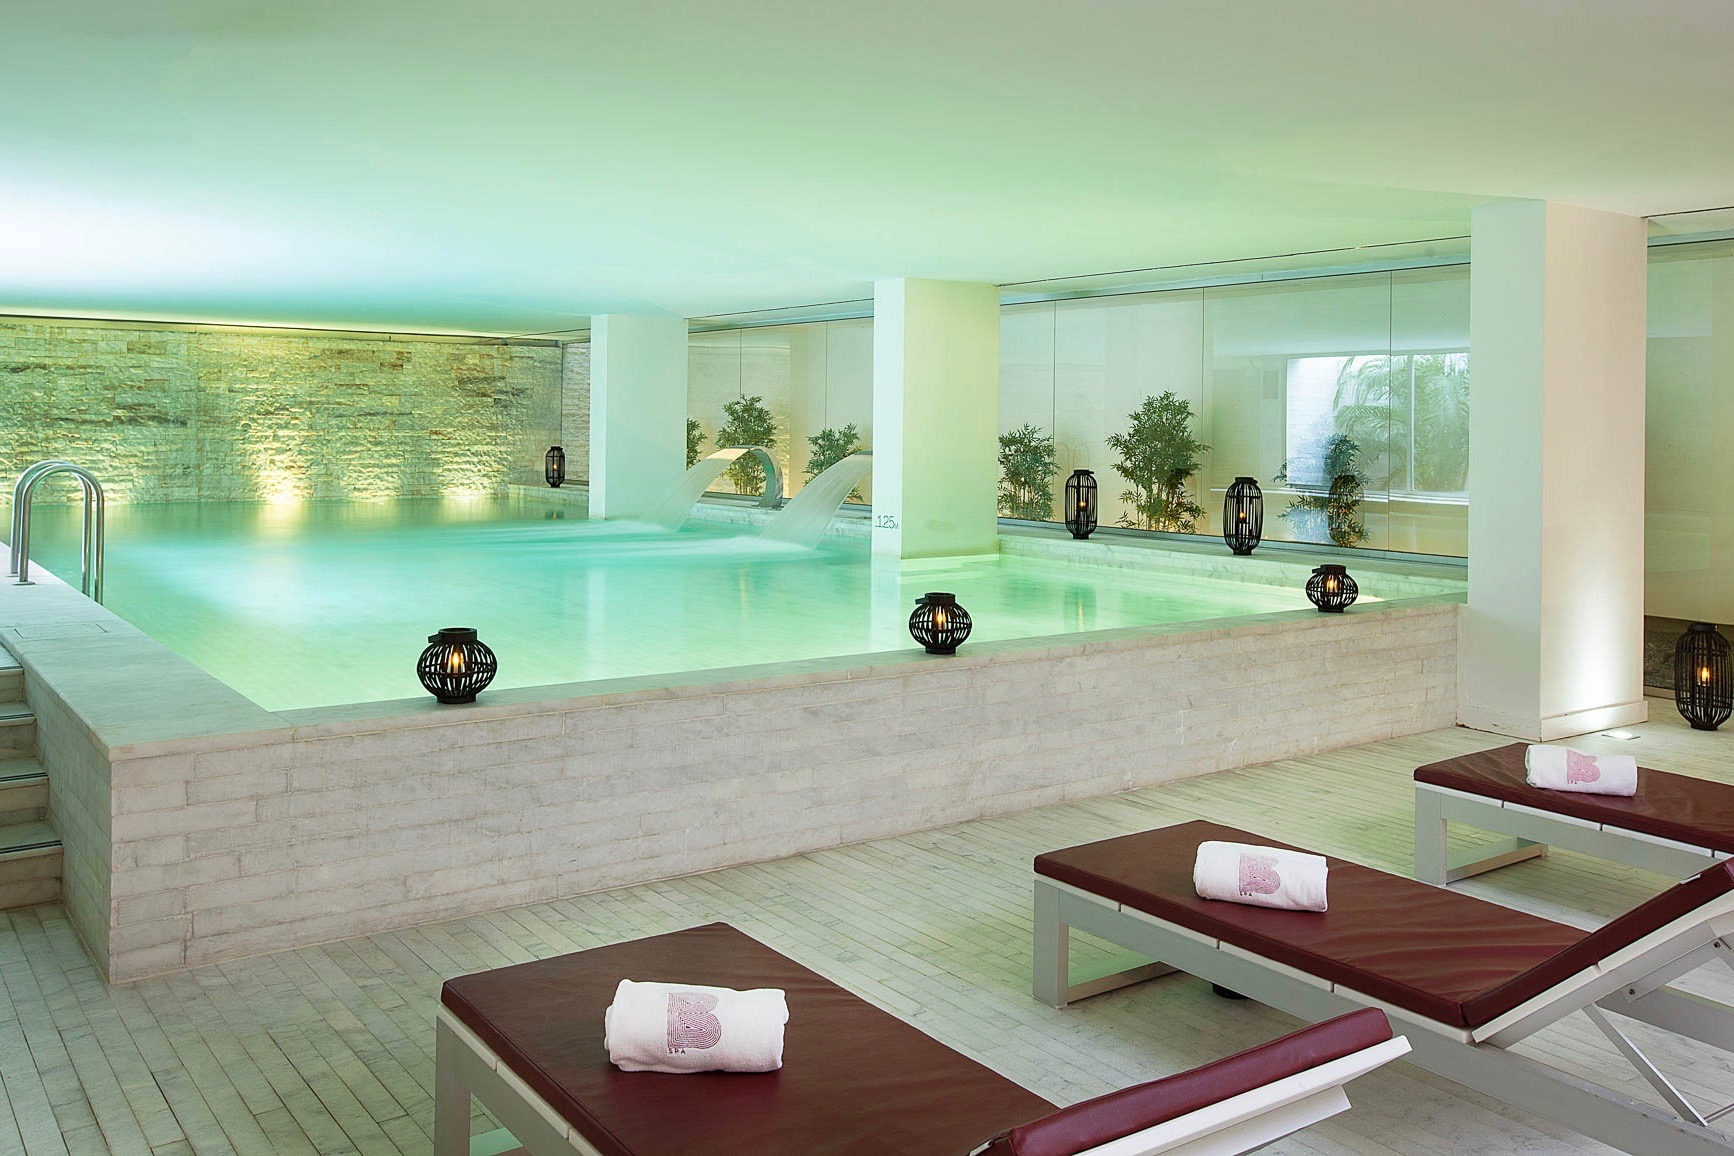 Altis-Belem-Hotel-Lissabon-Review-Spa-by-Karin-Herzog